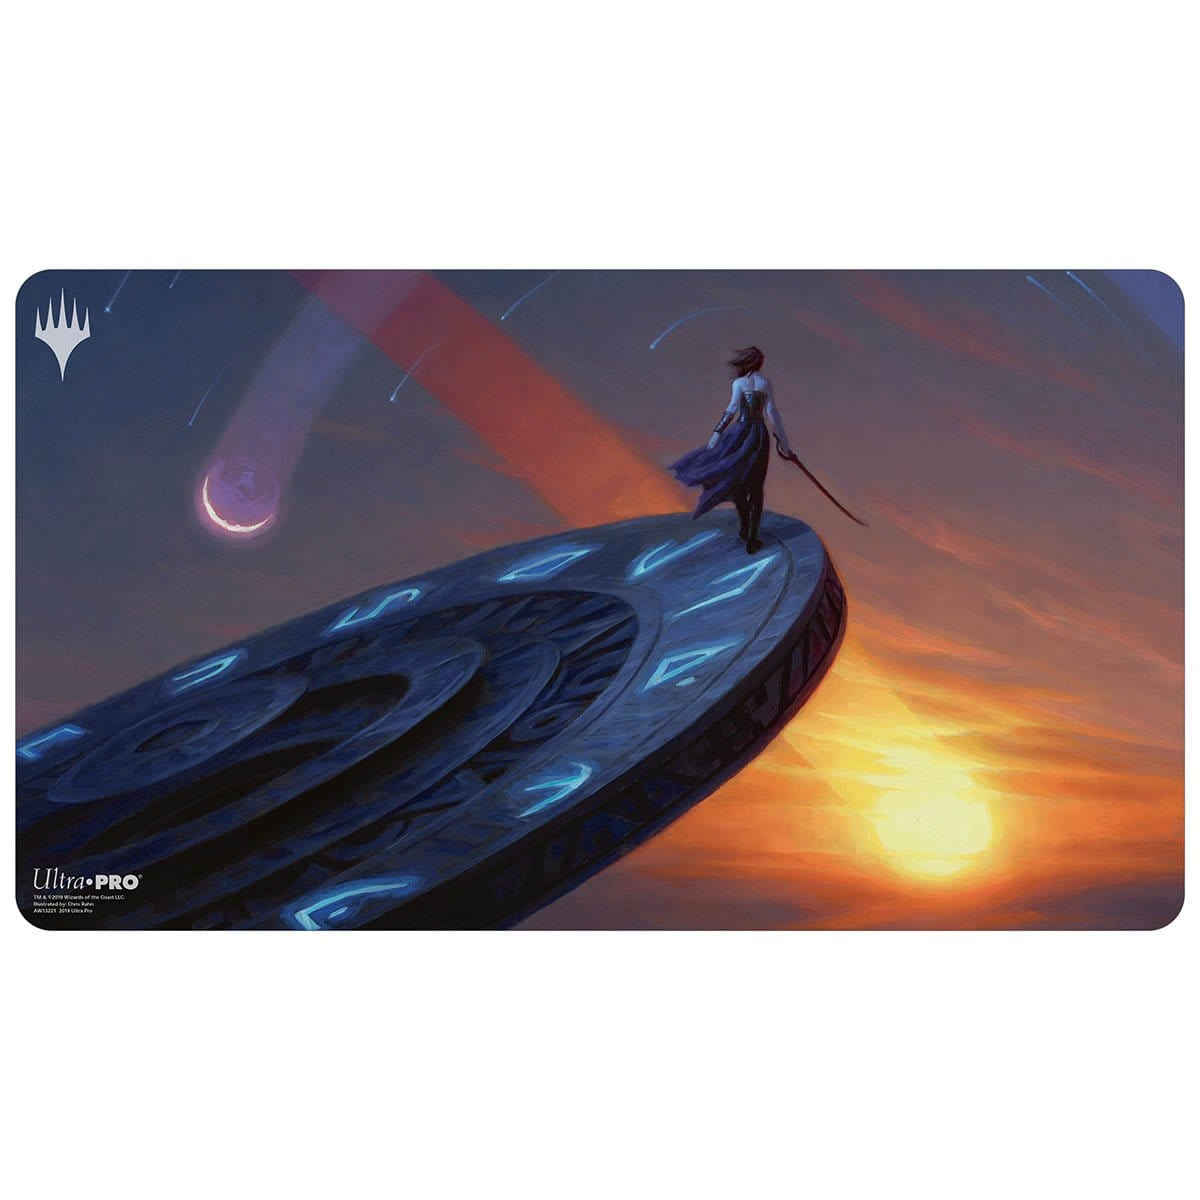 Time Walk Playmat - Playmat - Original Magic Art - Accessories for Magic the Gathering and other card games